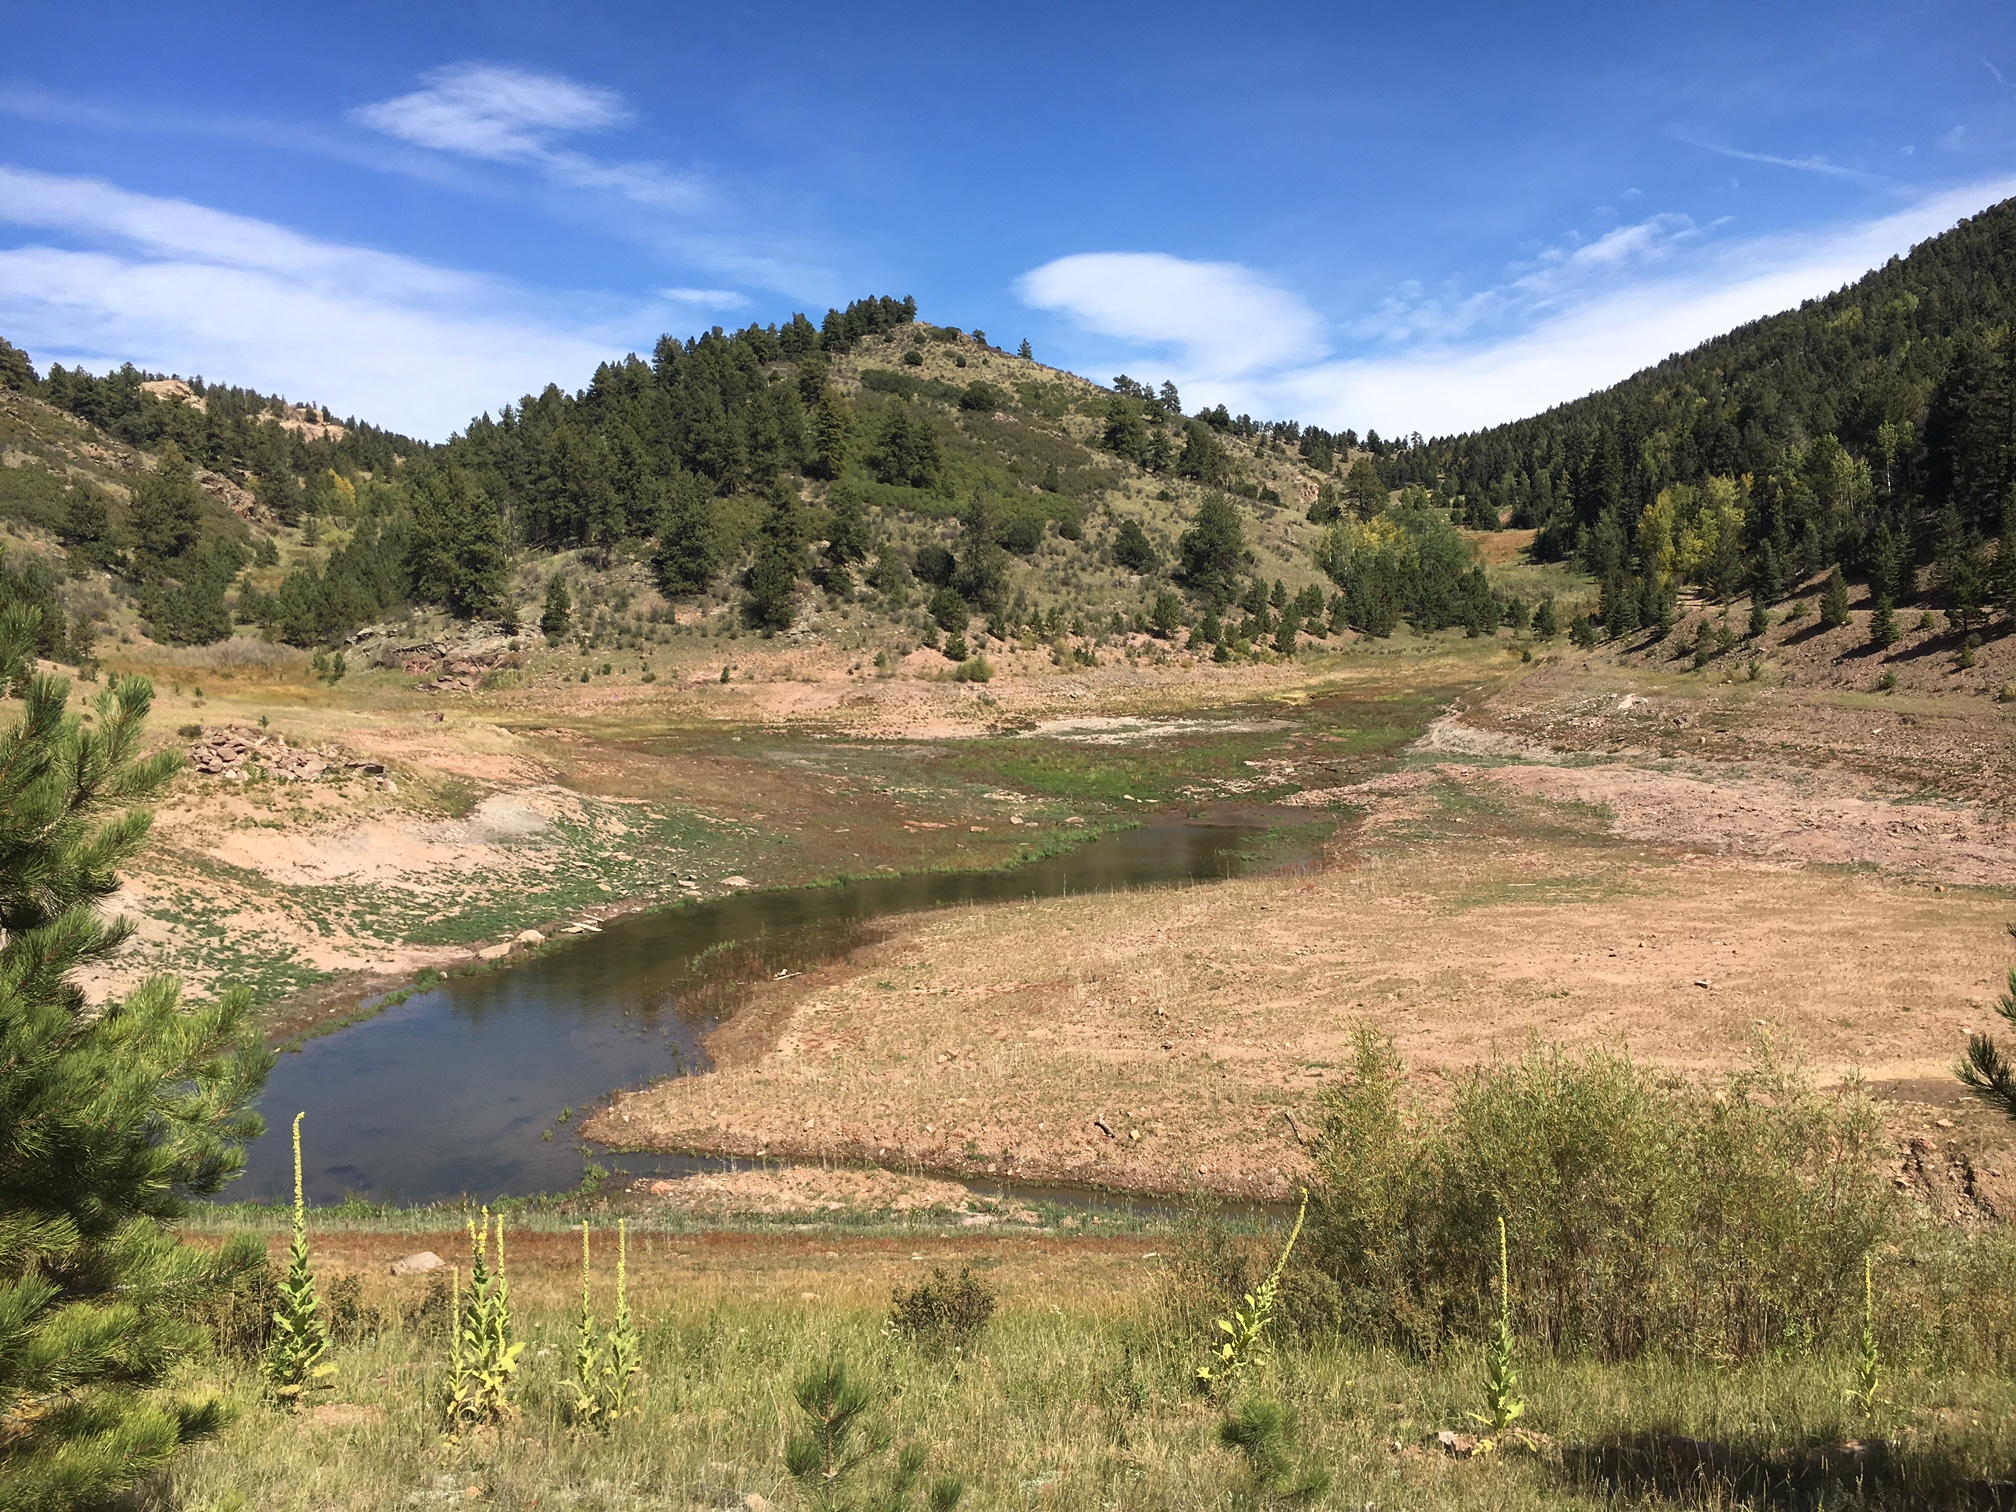 Riss Reservoir East - On an adjacent ranch to Riss North and Riss South, this project also required the breaching of a large earthen dam and restoration of the lake bottom. Twelve acres of native revegetation was designed to enhance upland, wetland, and stream habitat.